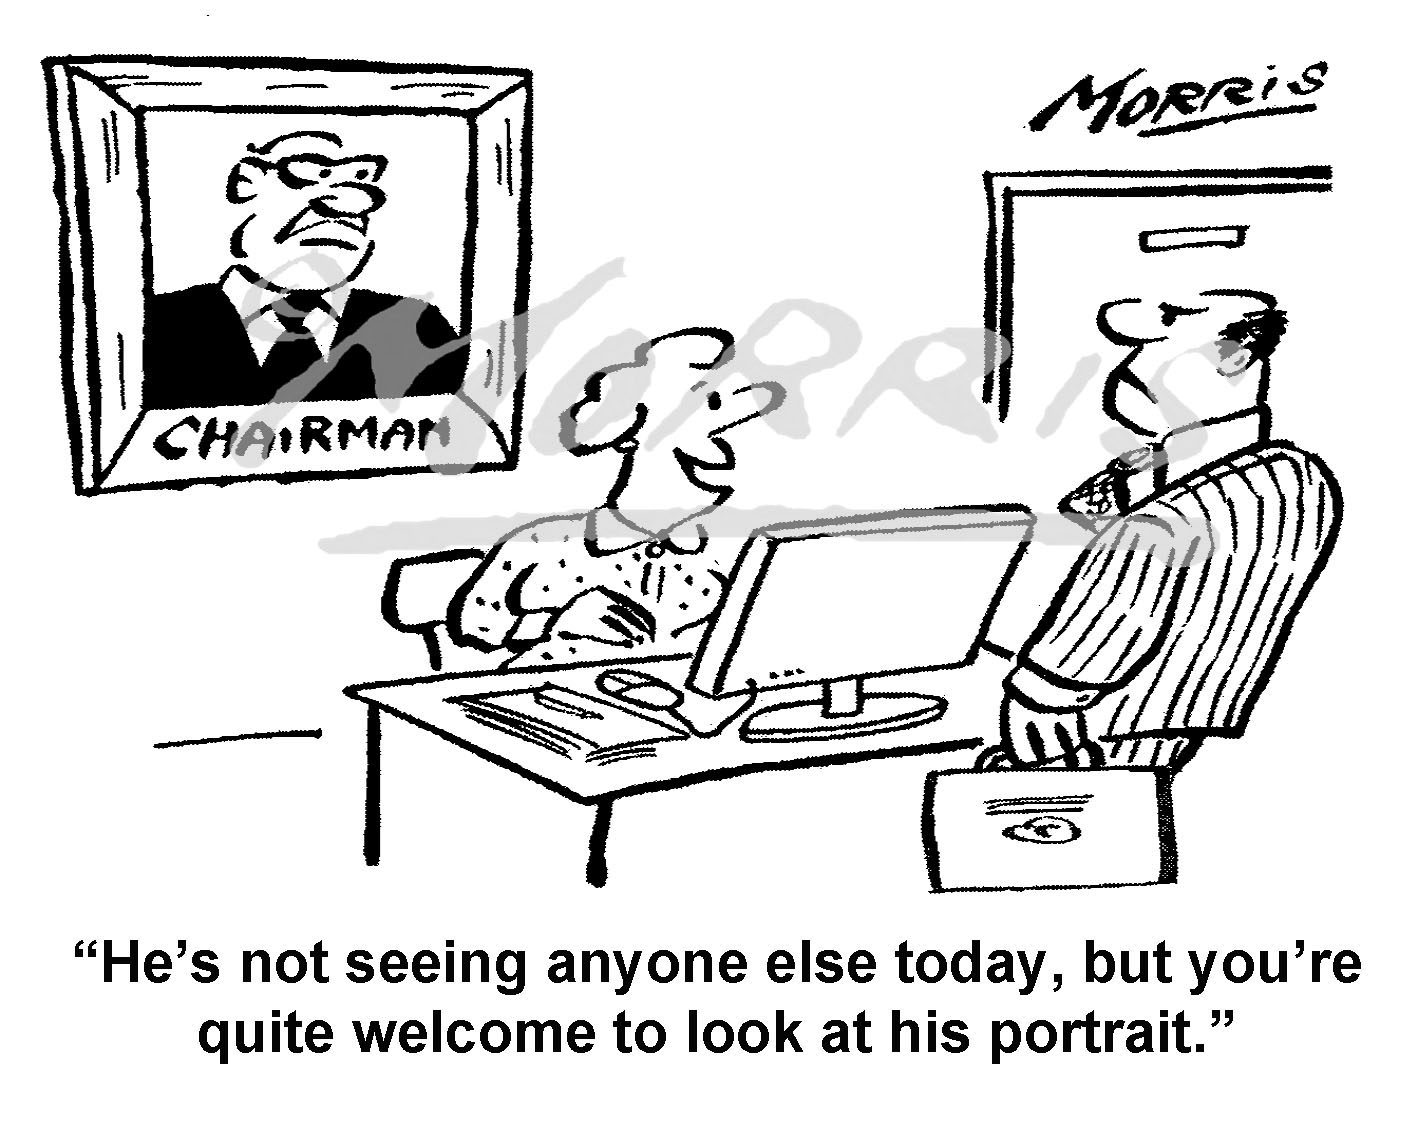 Chairman portrait cartoon – Ref: 7388bw